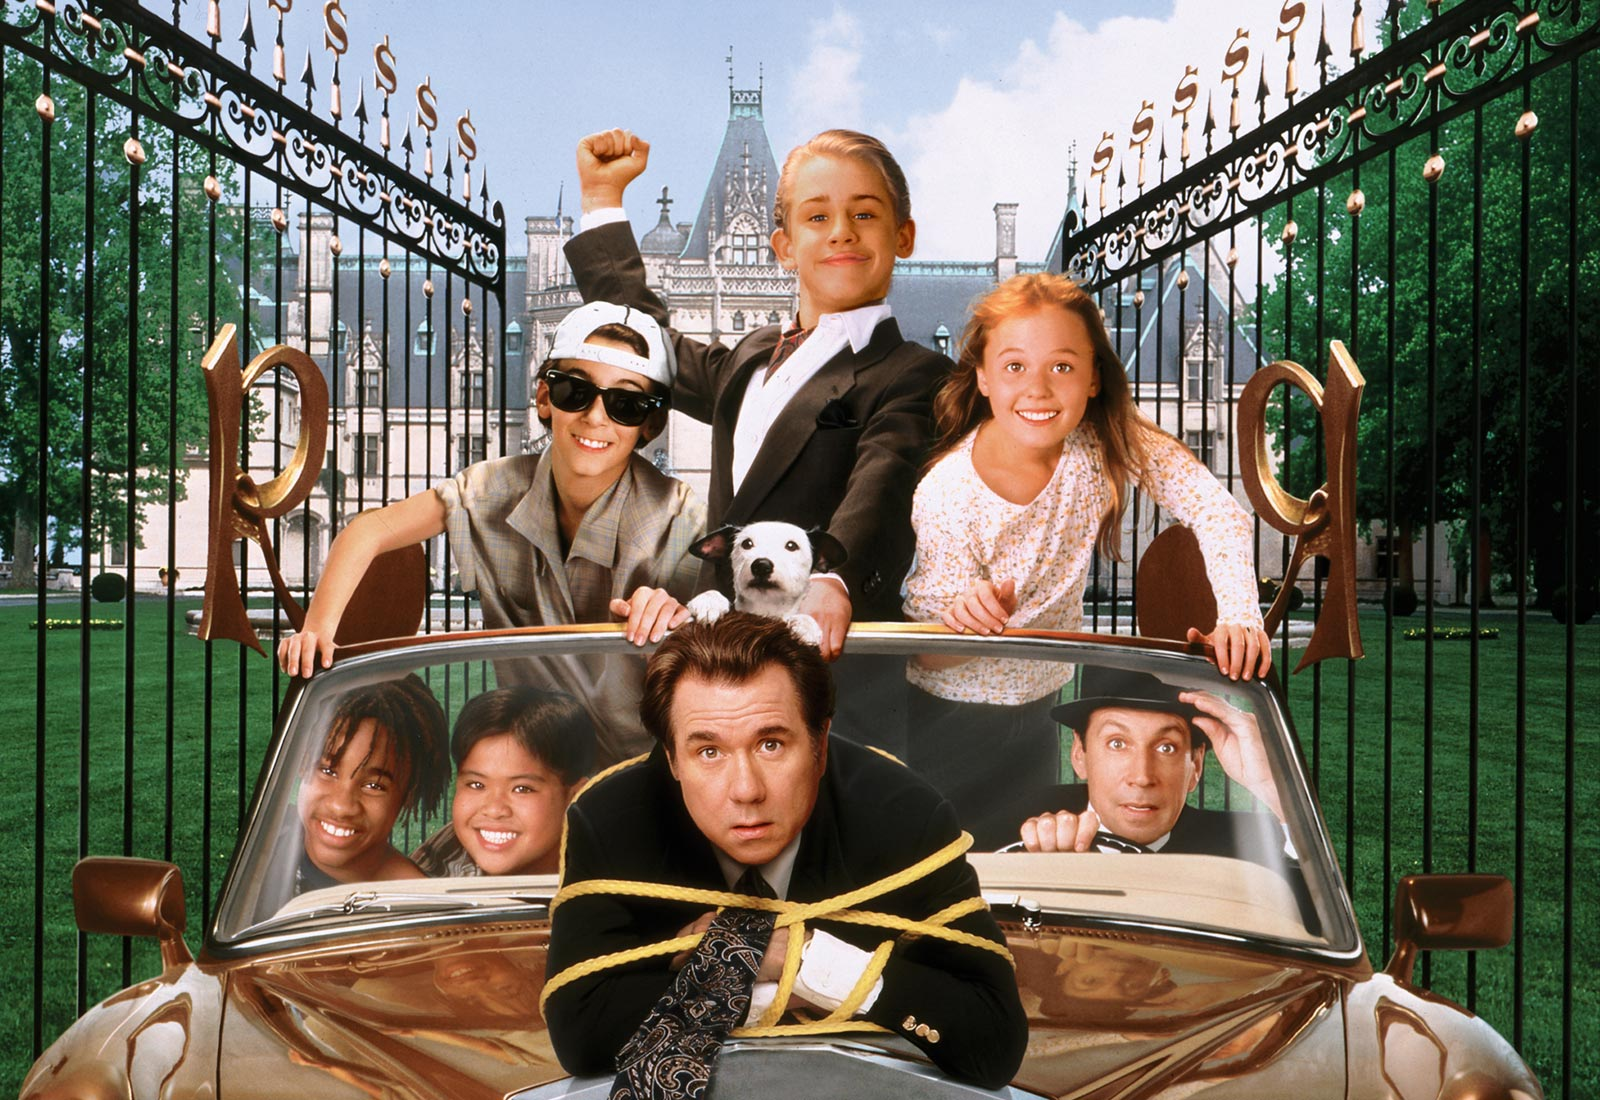 richie rich 1994 full movie in hindi download hd